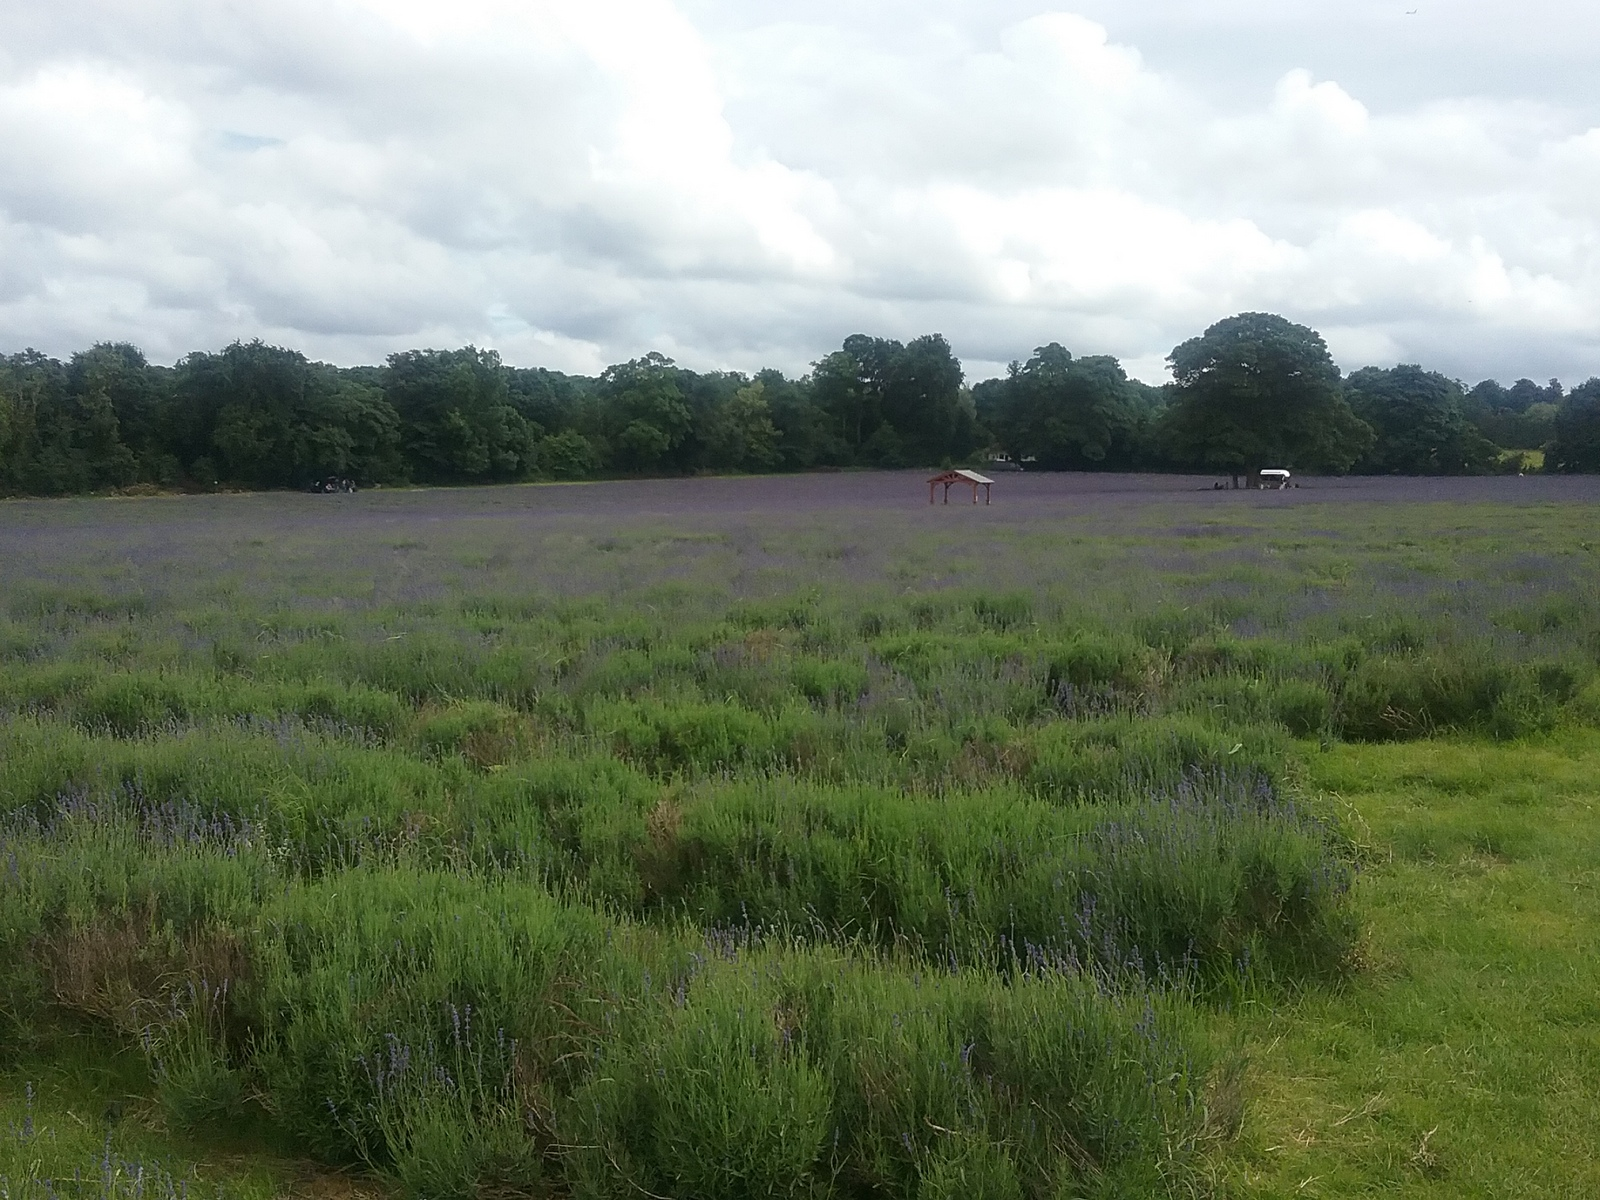 20160630_155526 Public footpath across Mayfield Farm lavender fields